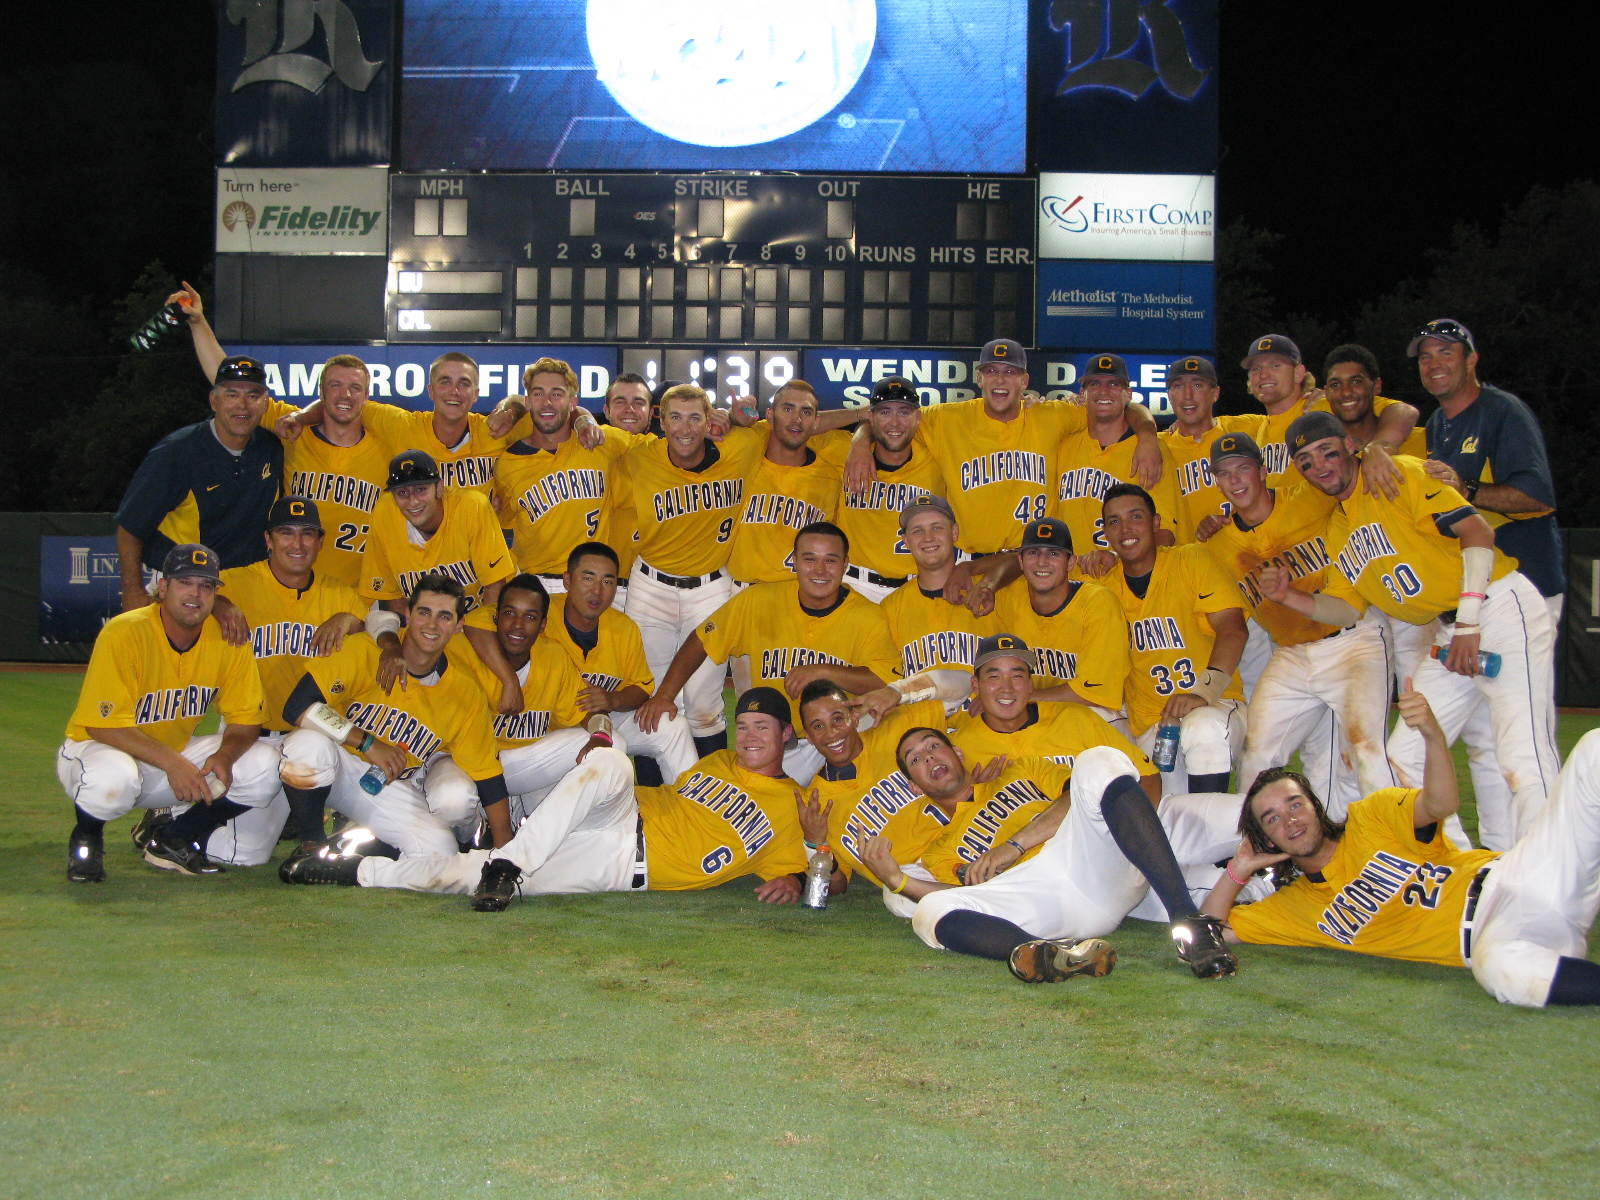 The Cal baseball team celebrates and poses for the camera after scoring four runs in the bottom of the ninth inning to defeat Baylor.